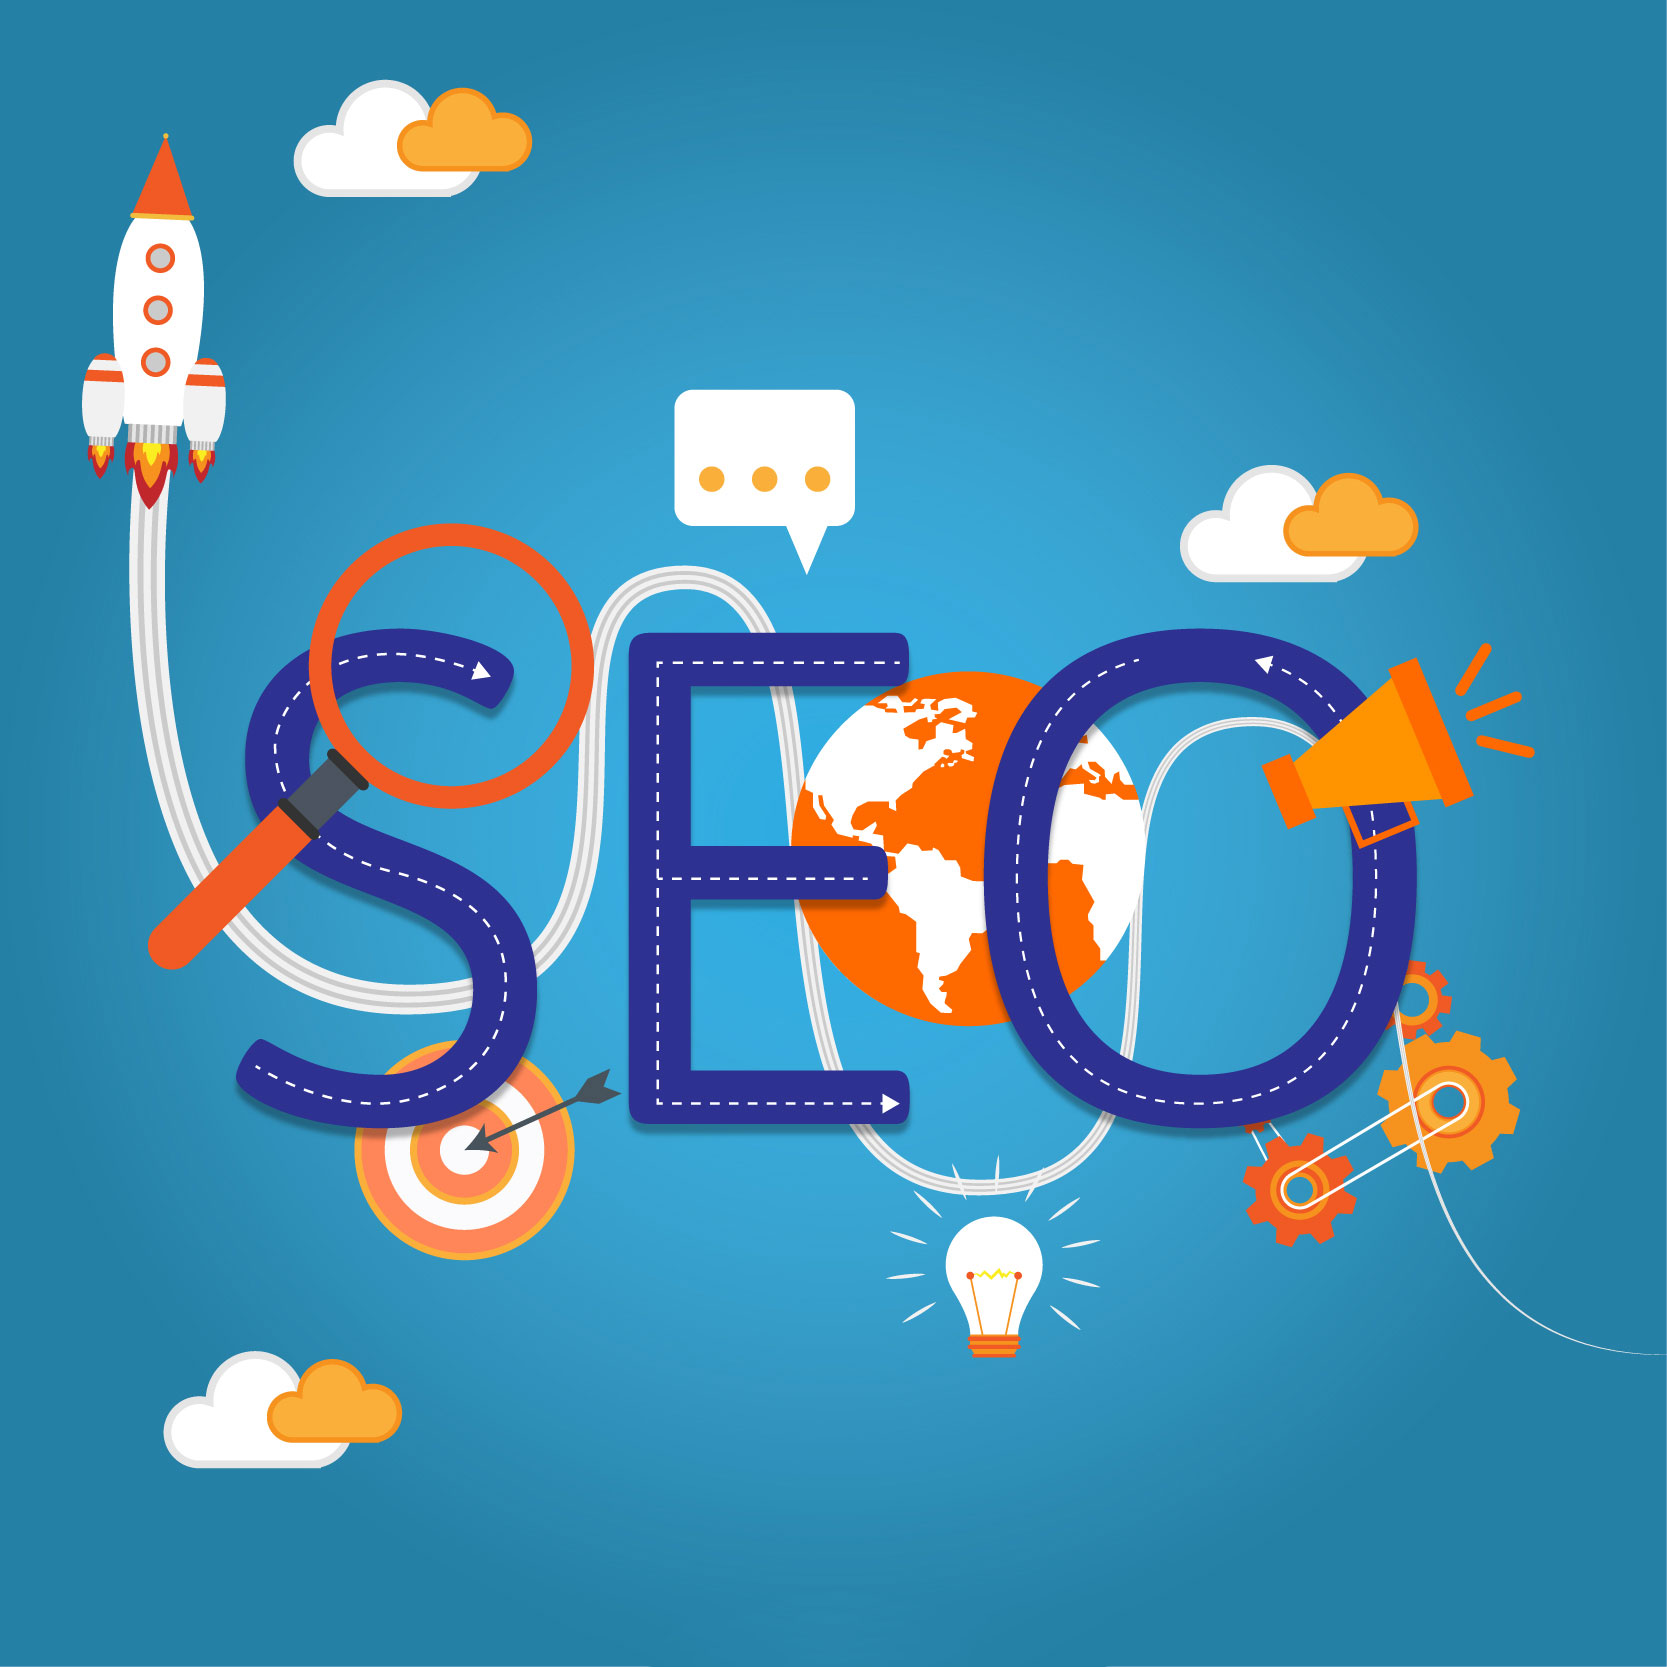 SEO – Search Engine Optimization for your site